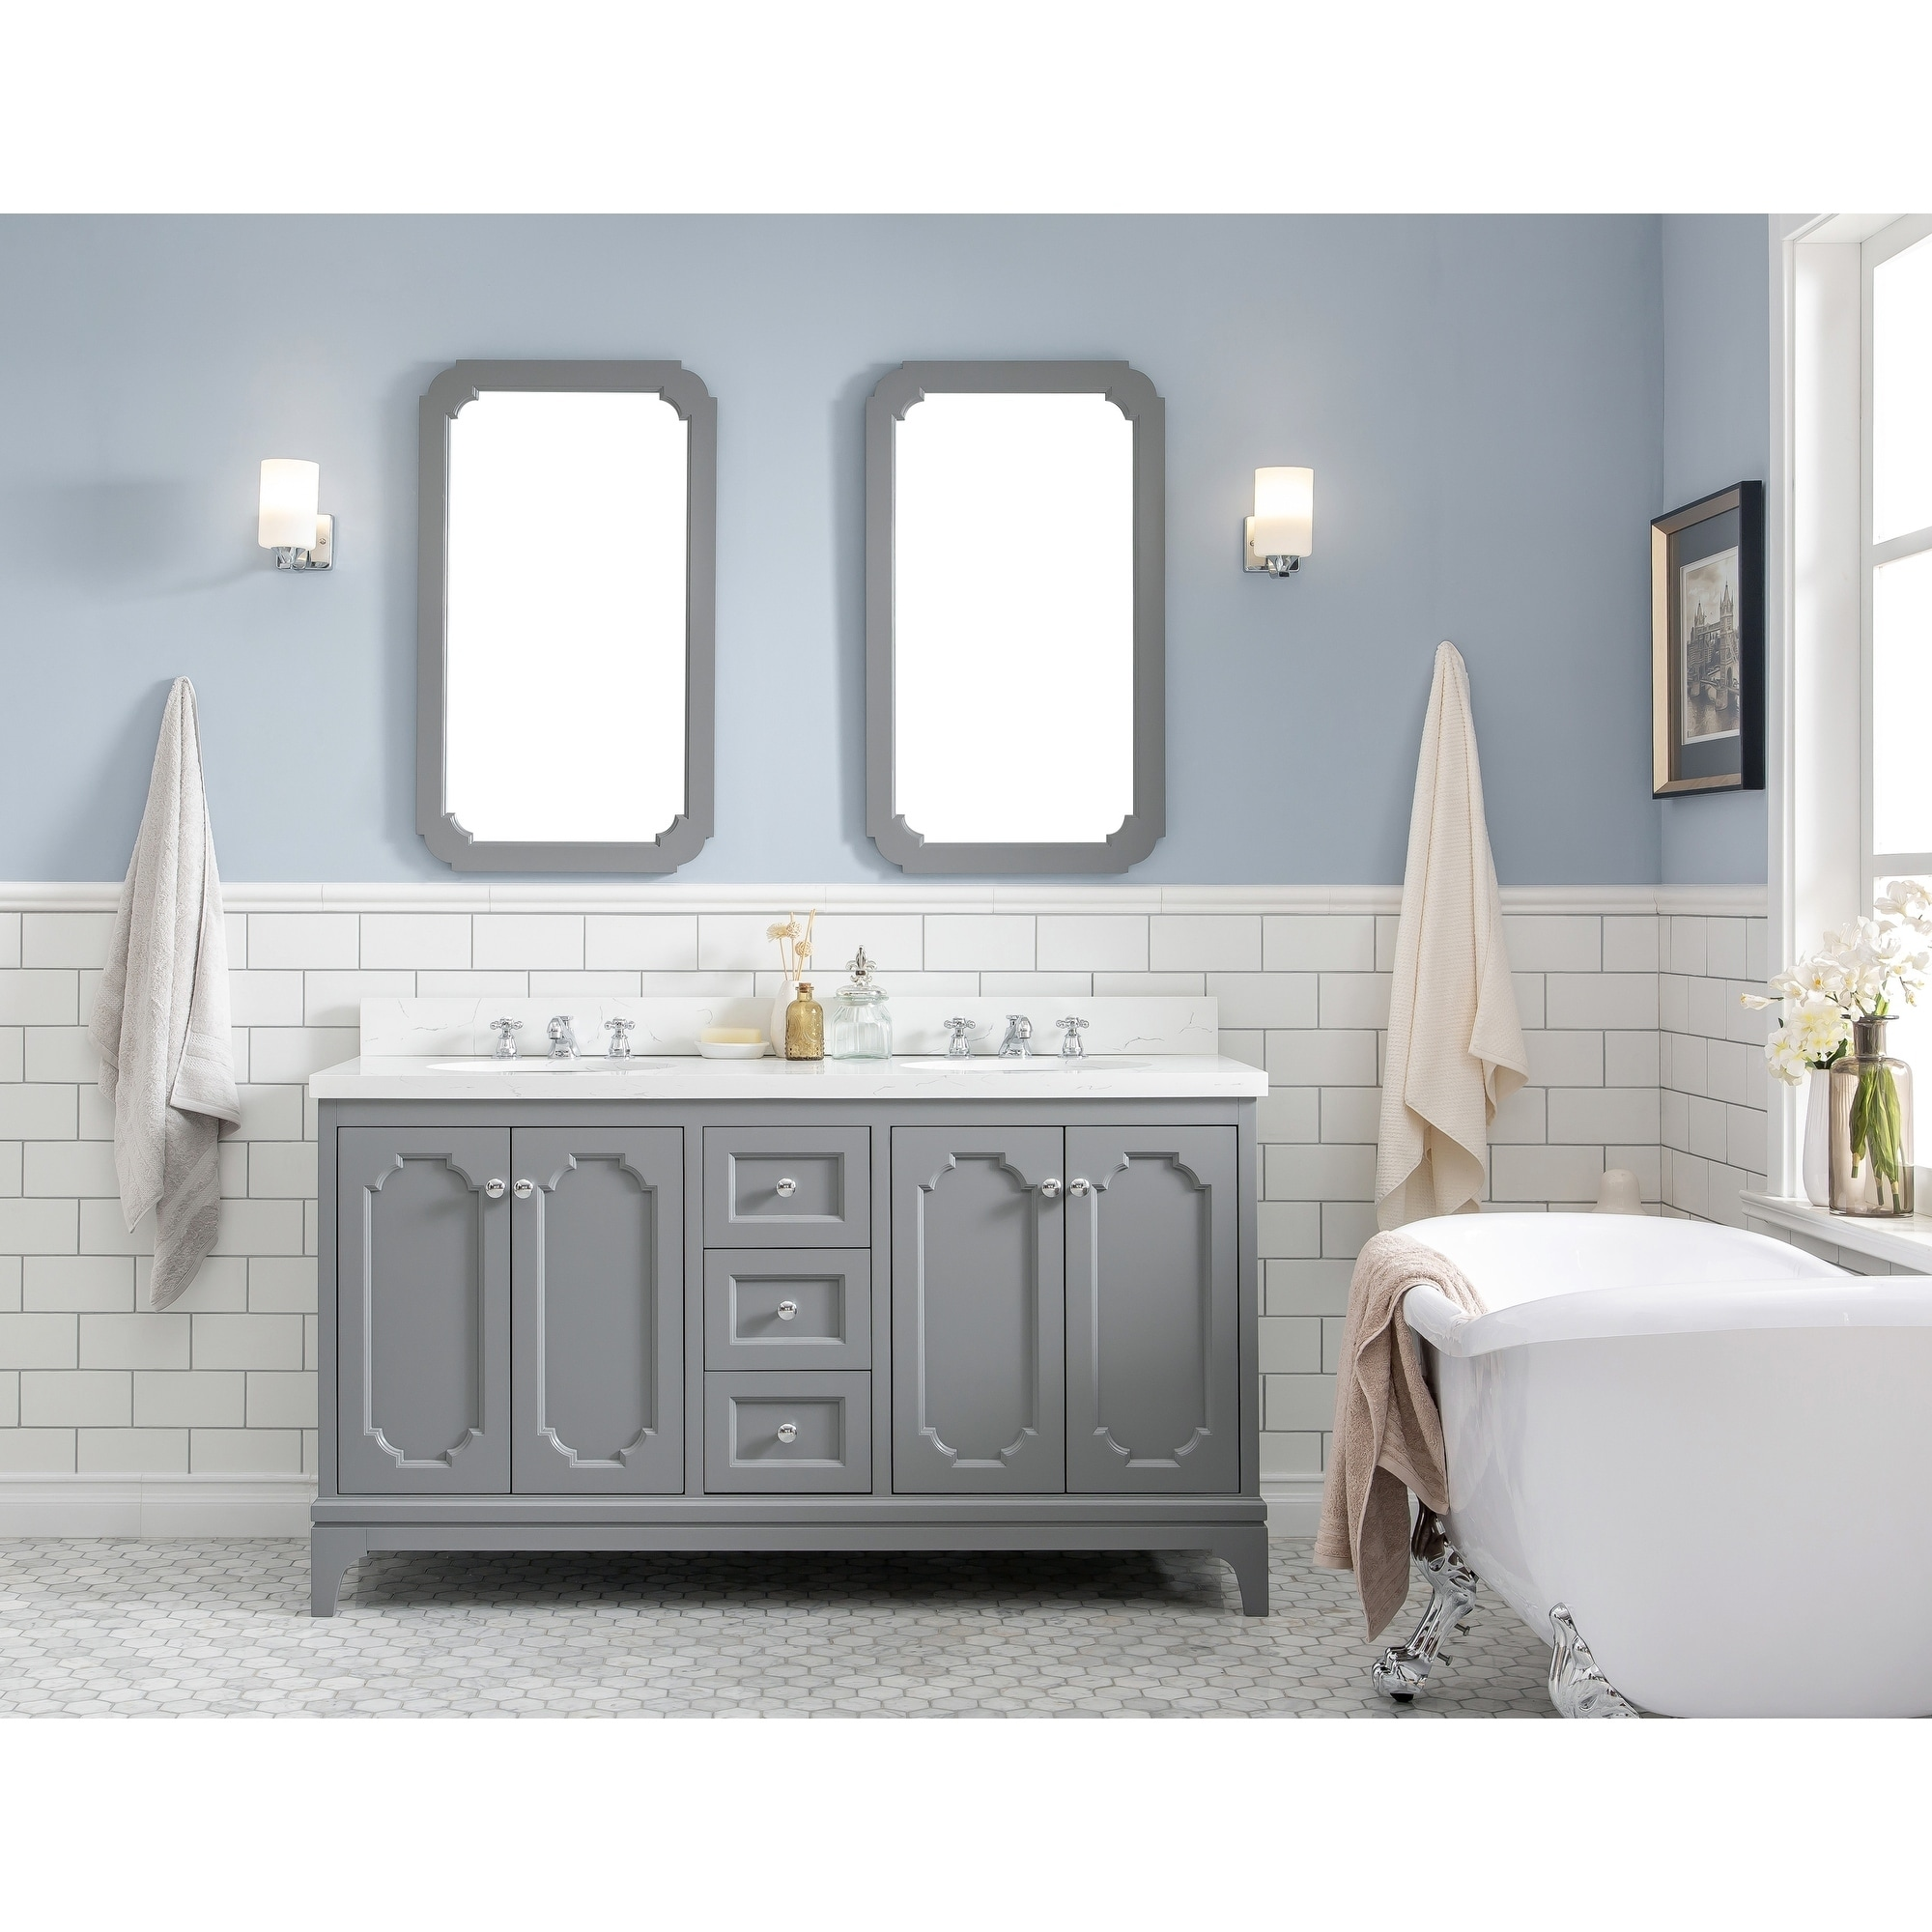 60 Inch Wide Double Sink Quartz Carrara Bathroom Vanity With Matching Mirrors From The Queen Collection Overstock 24267867